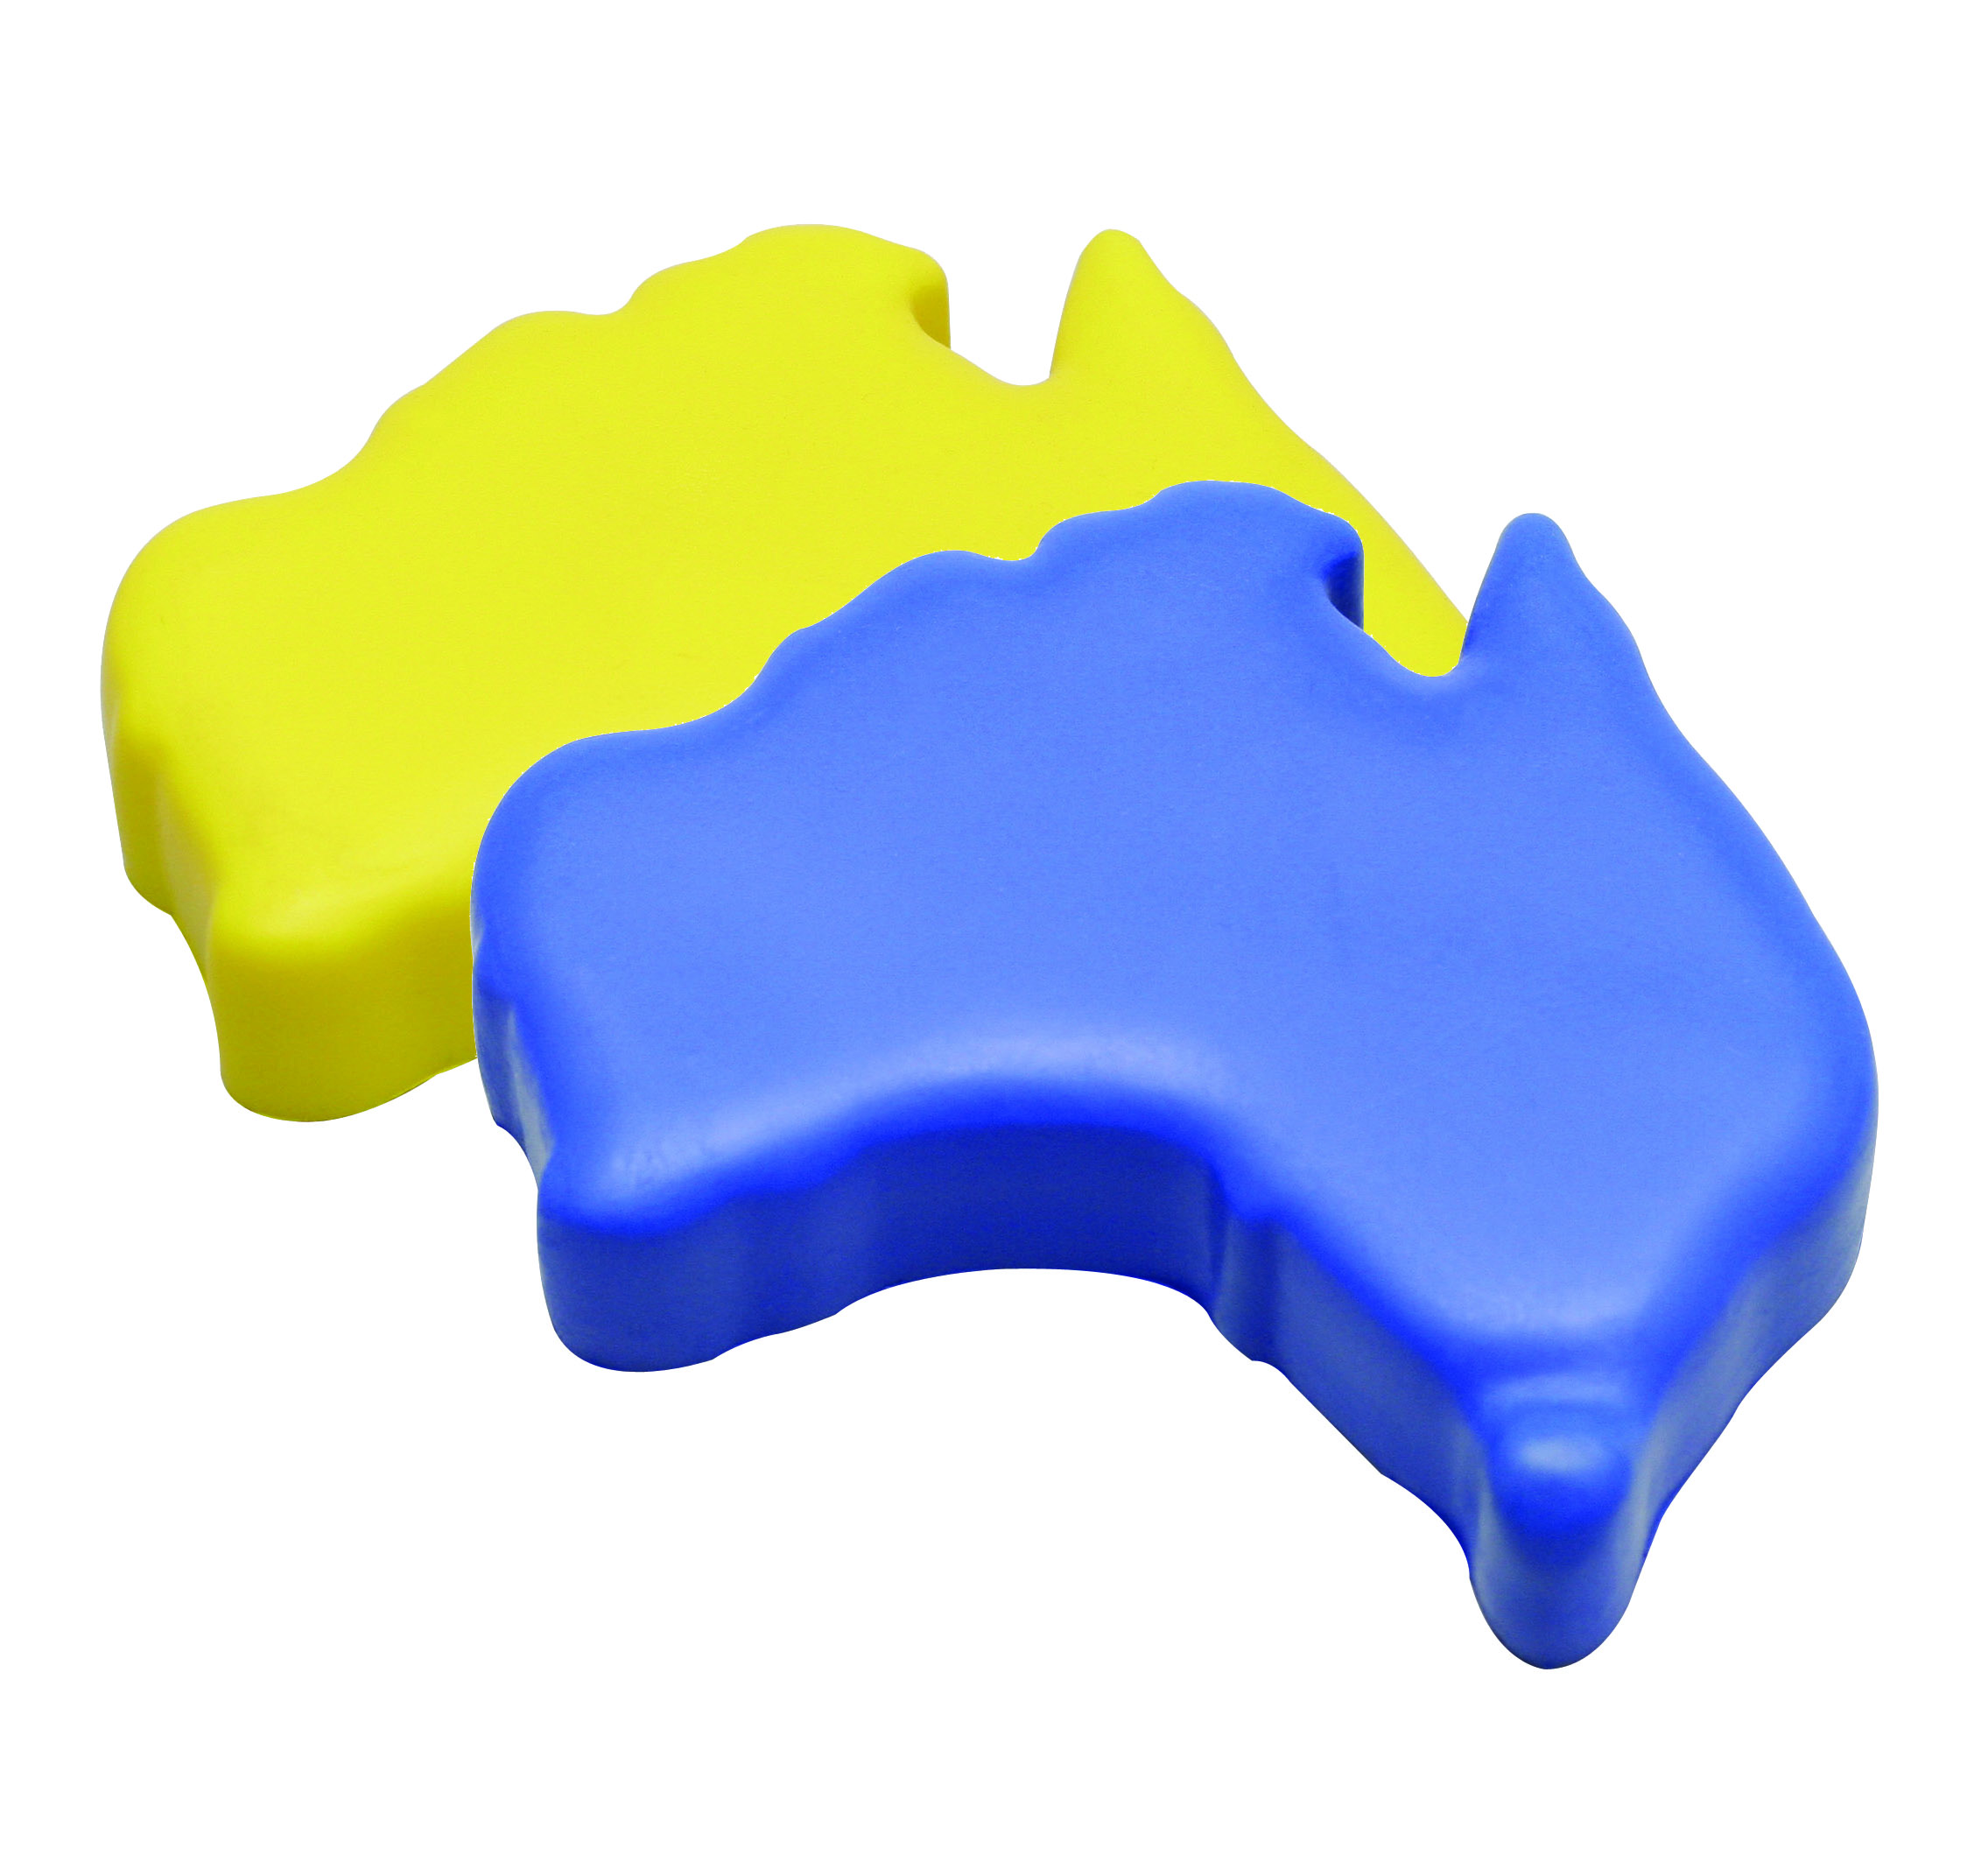 AUSSIE MAP  (yellow, blue)